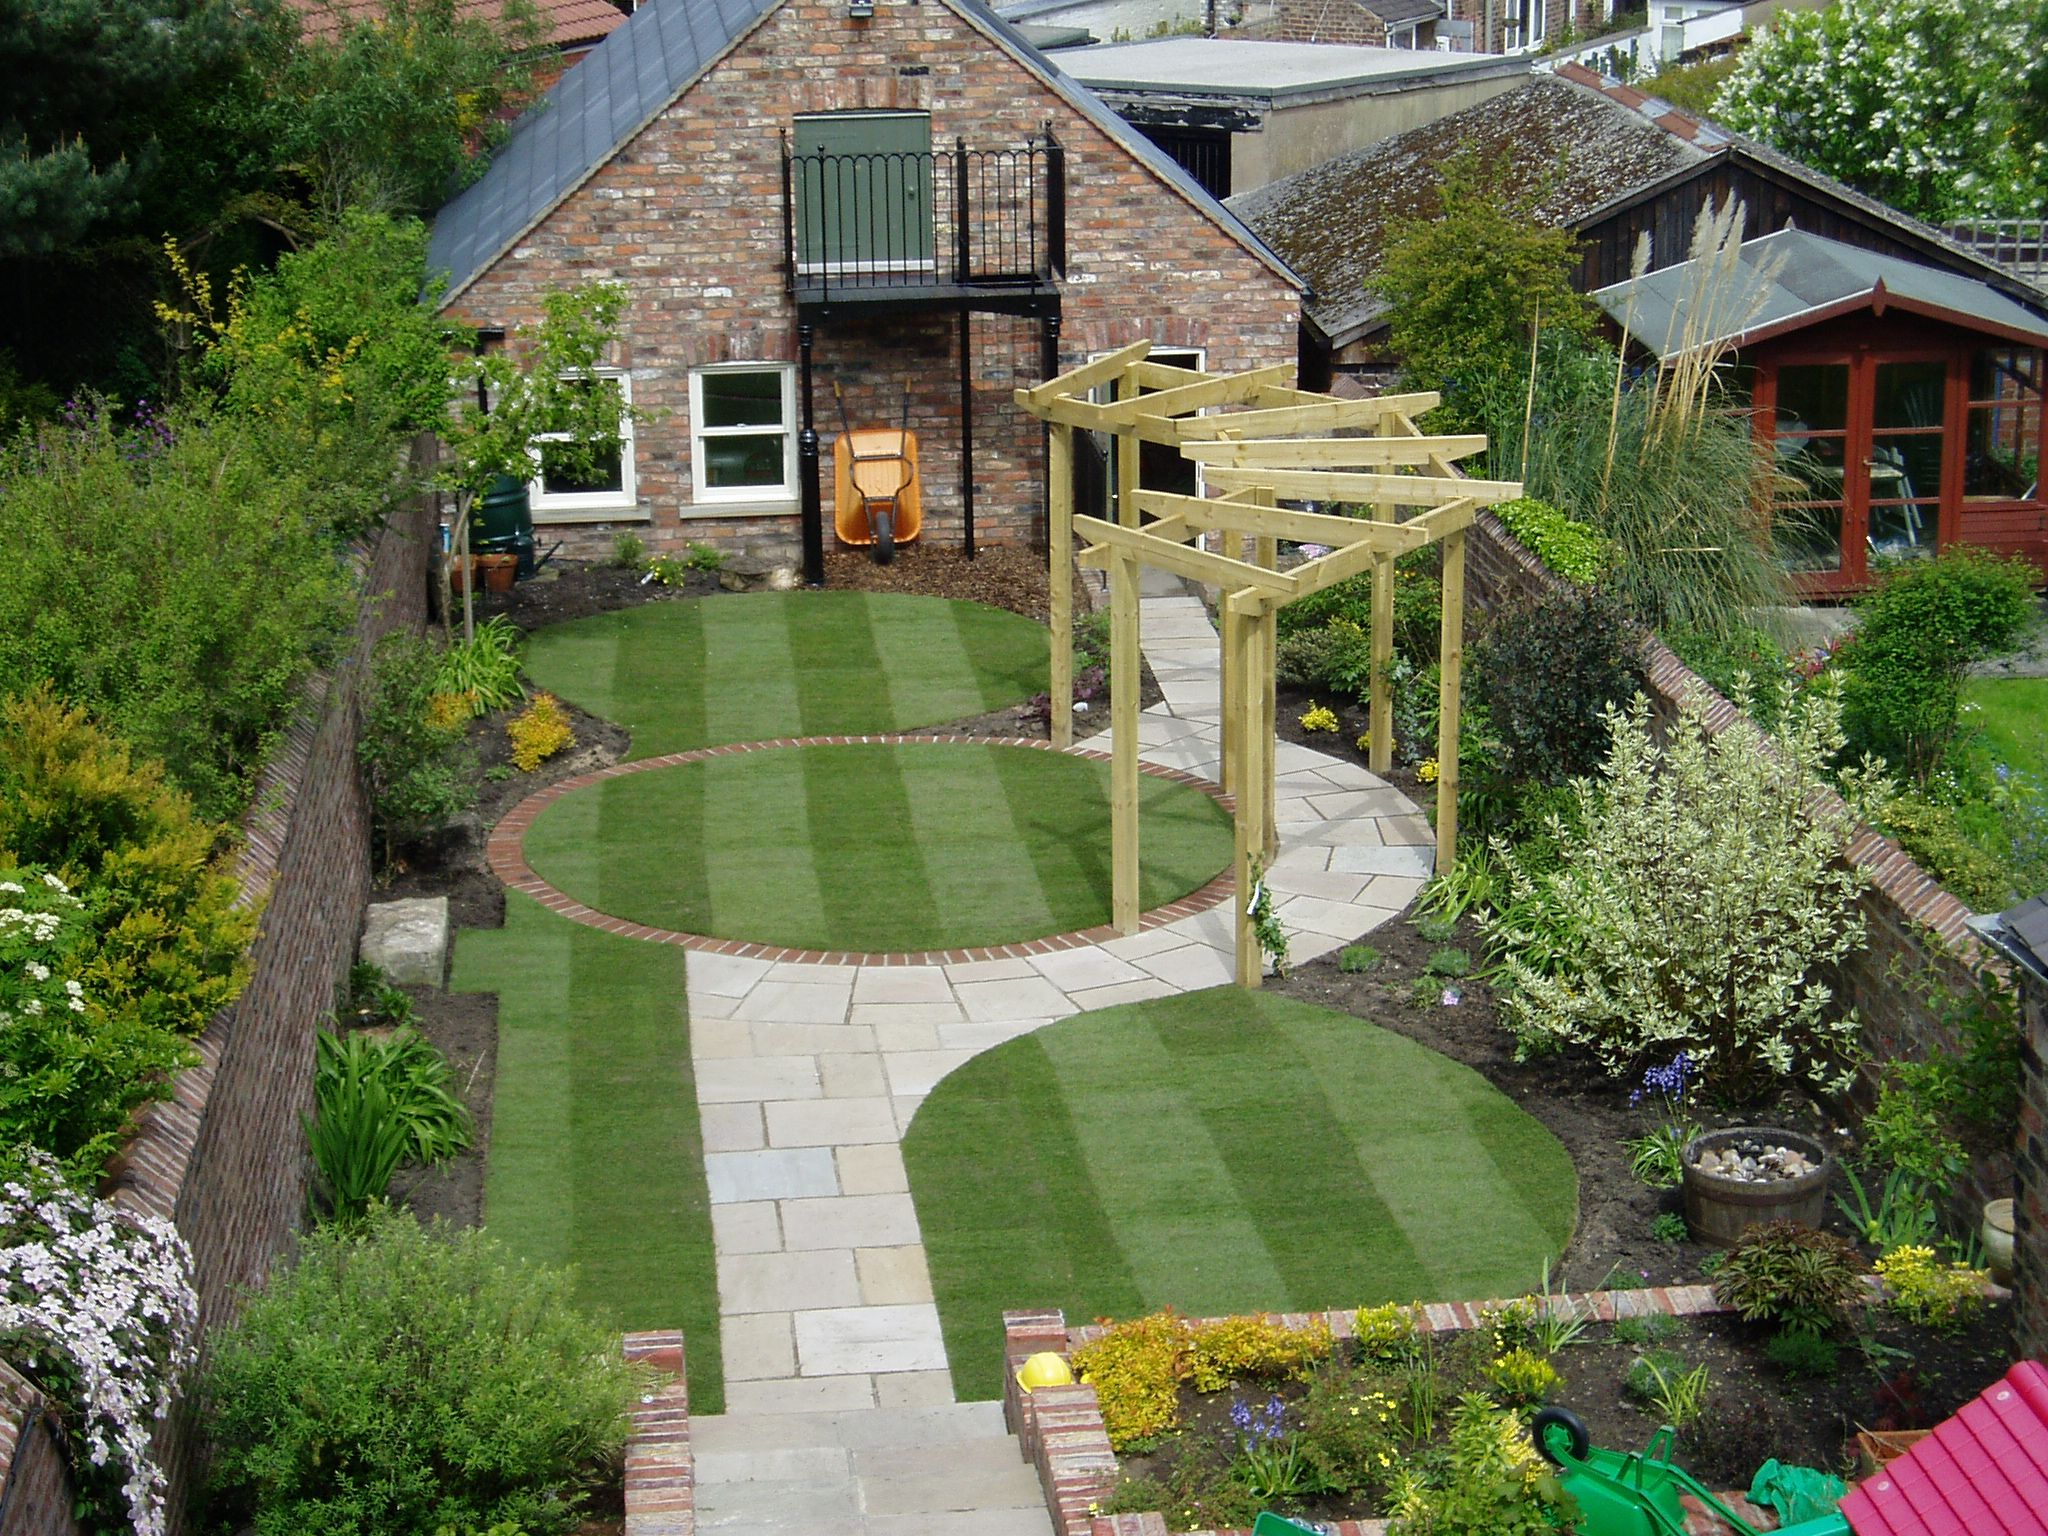 Gardens Design Ideas garden design ideas london 50 Modern Garden Design Ideas To Try In 2017